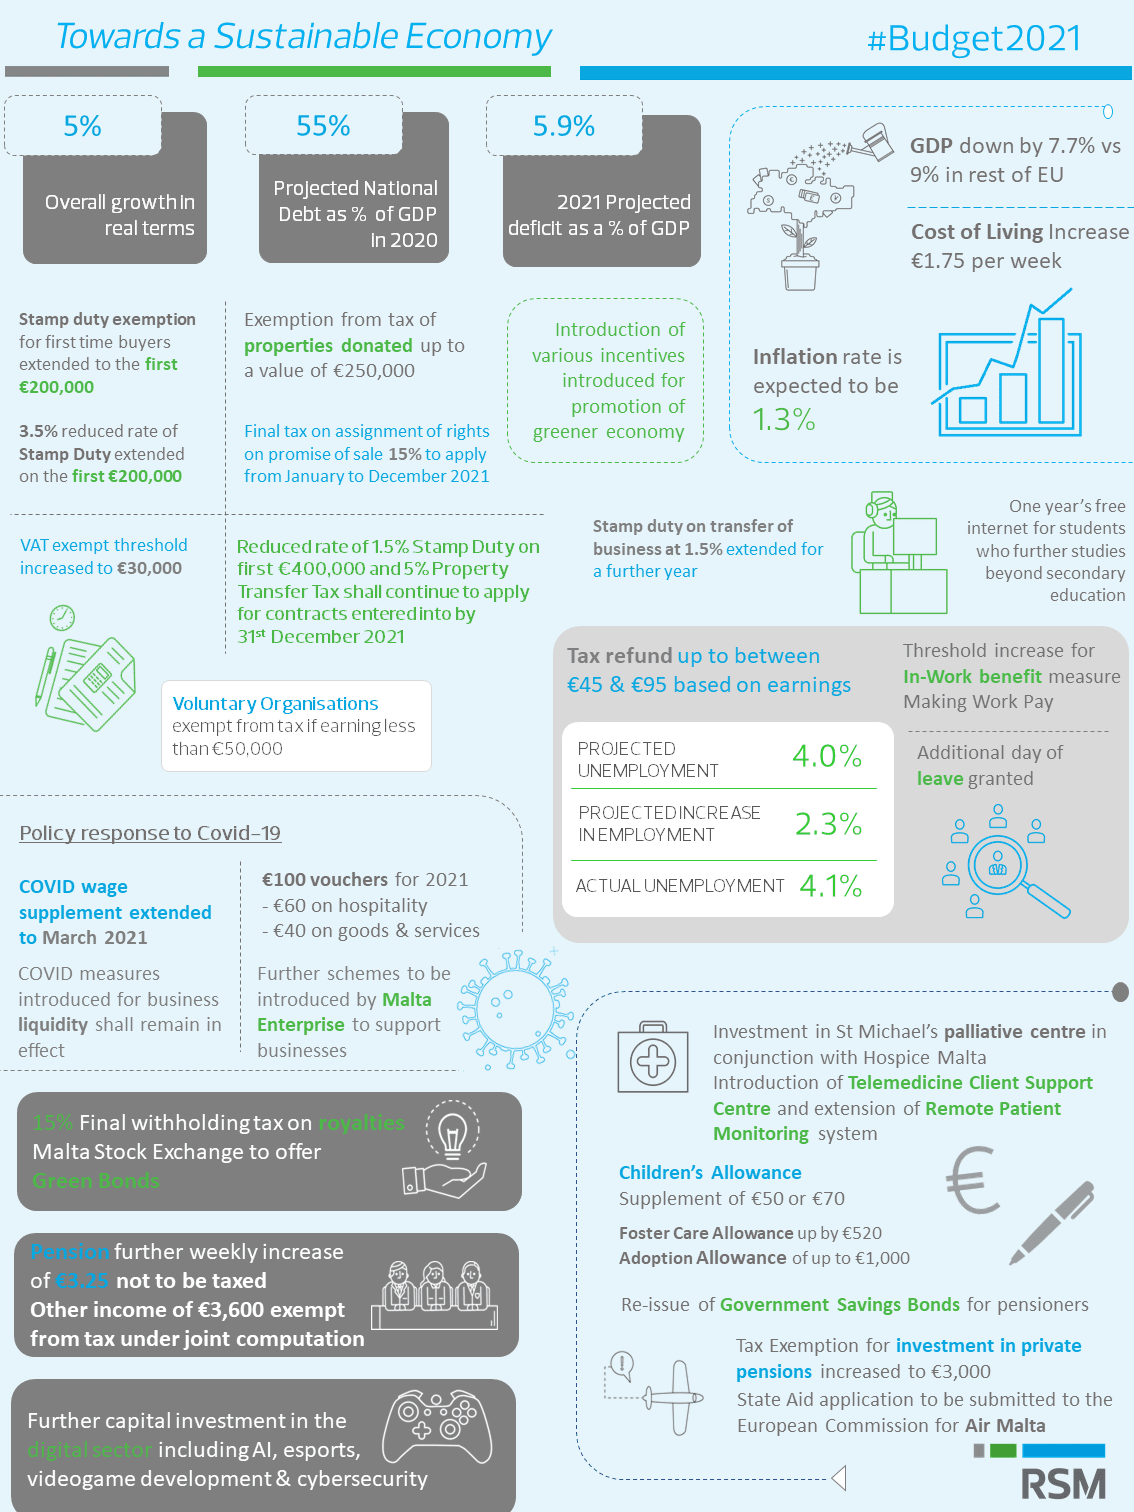 budget_2021_-_infographic_-_mm.png